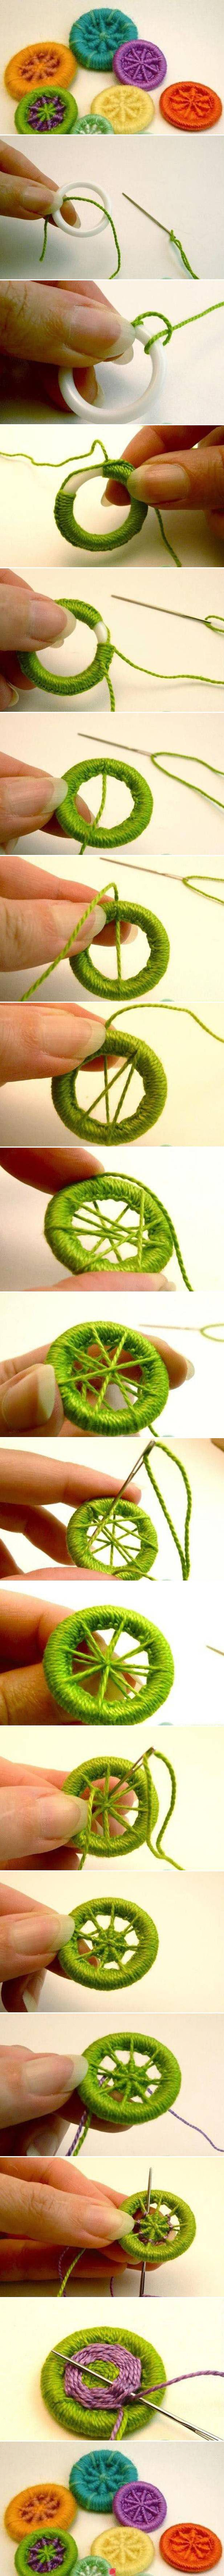 These would make beautiful buttons. I may do a giant one of these with rope and turn it into and outdoor seat/swing.